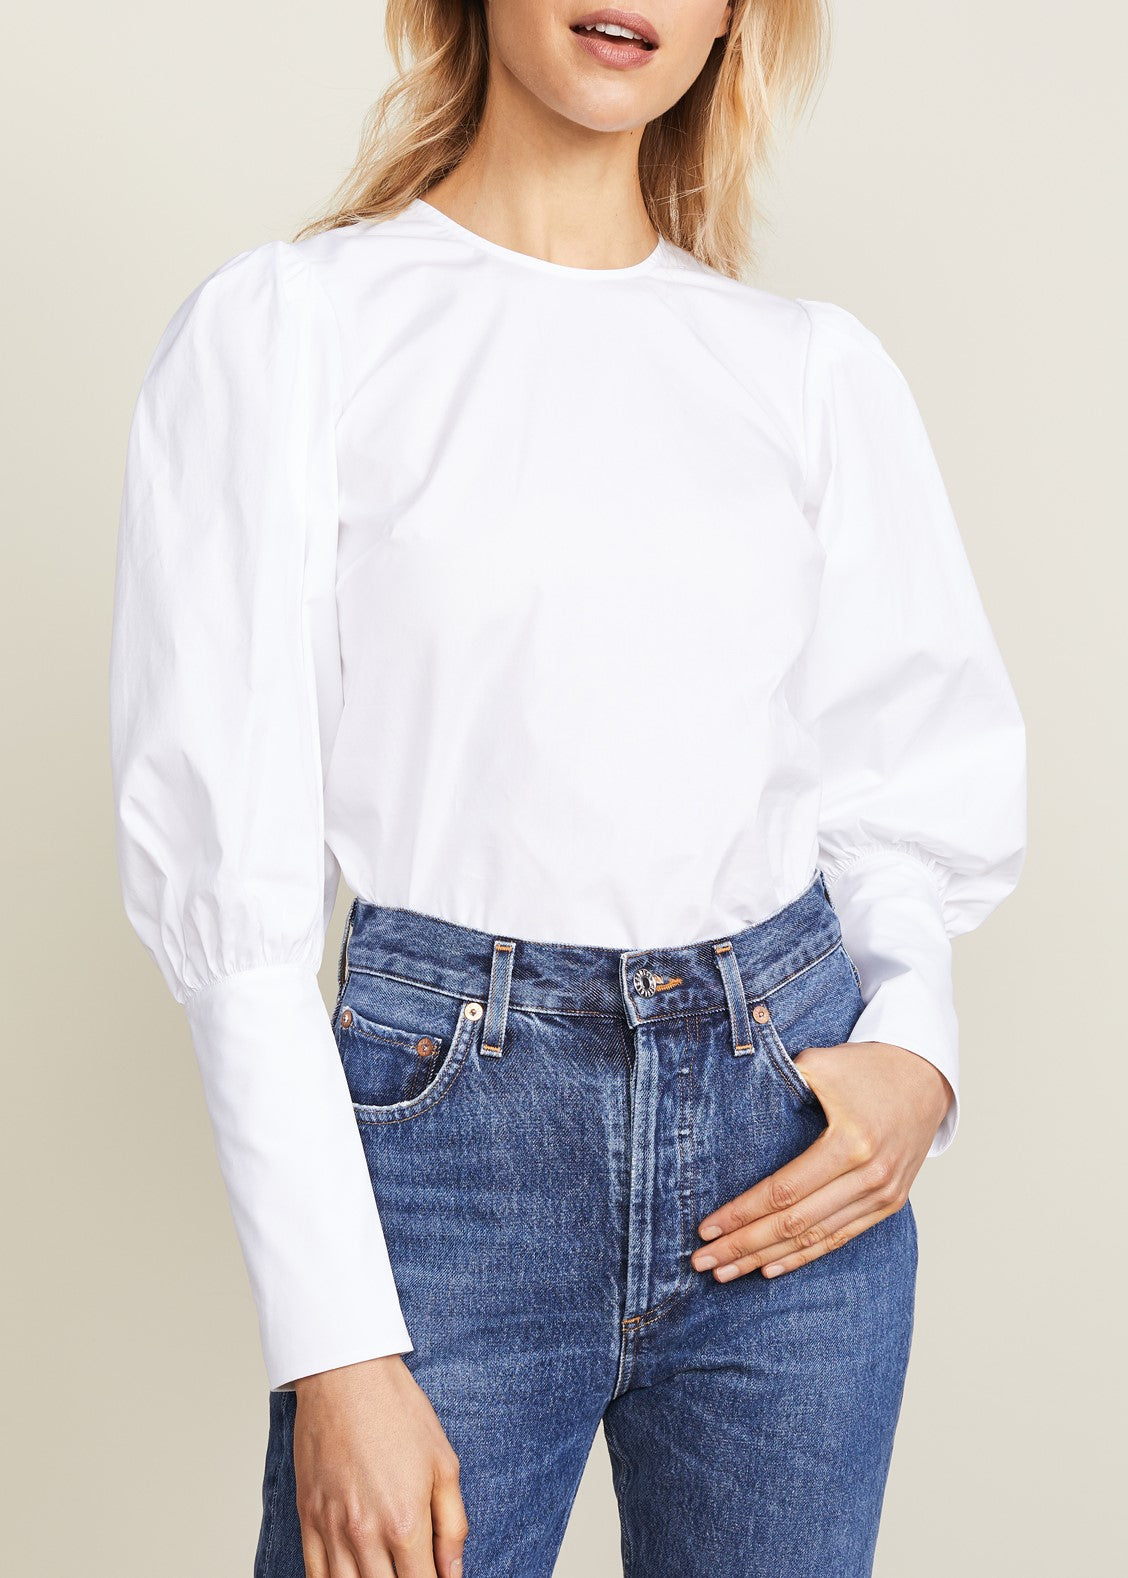 Veronica Beard Clarke puff sleeve top in white